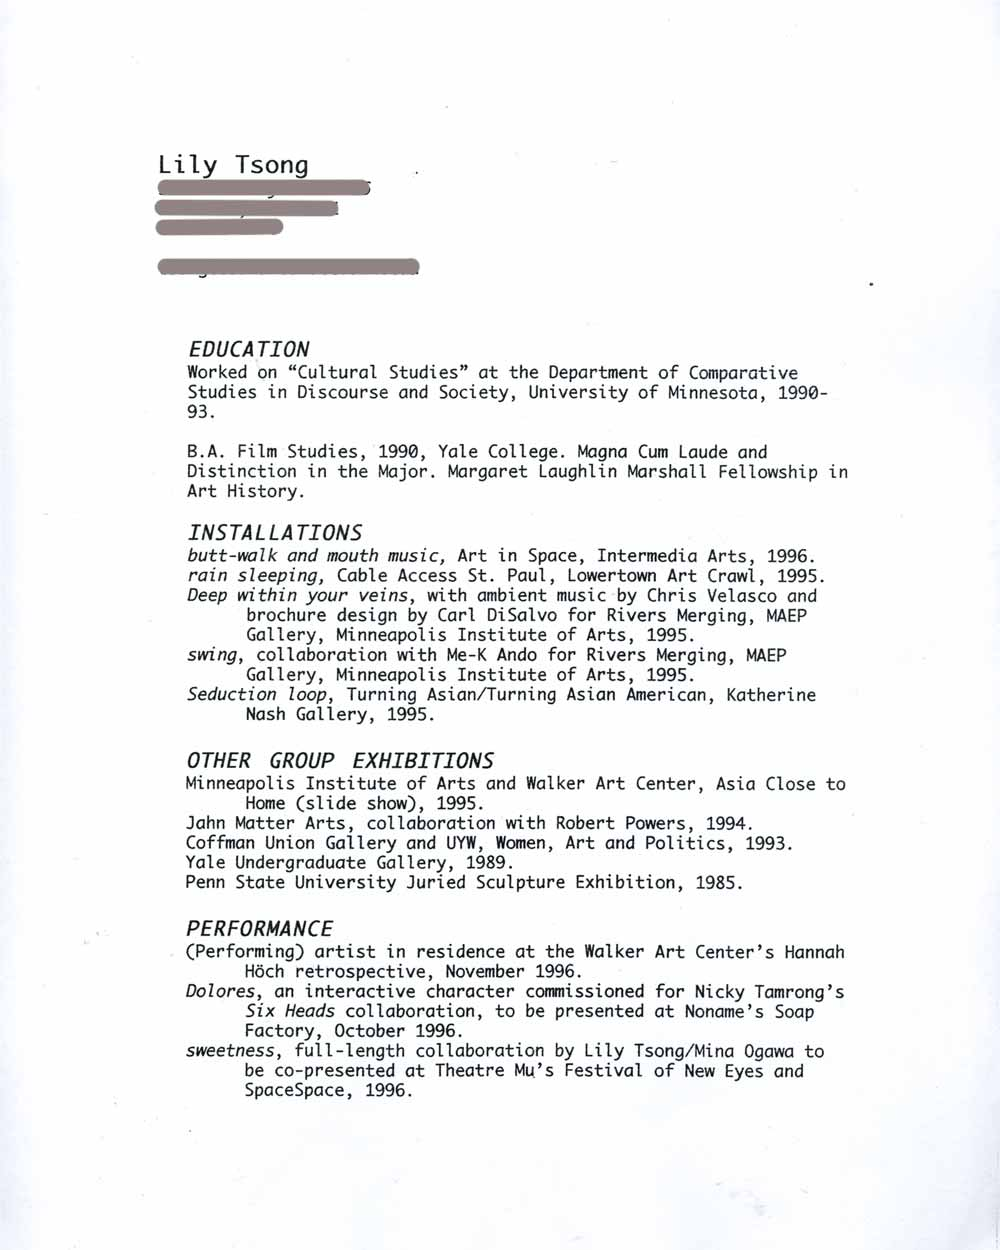 Lily Tsong's Resume, pg 1